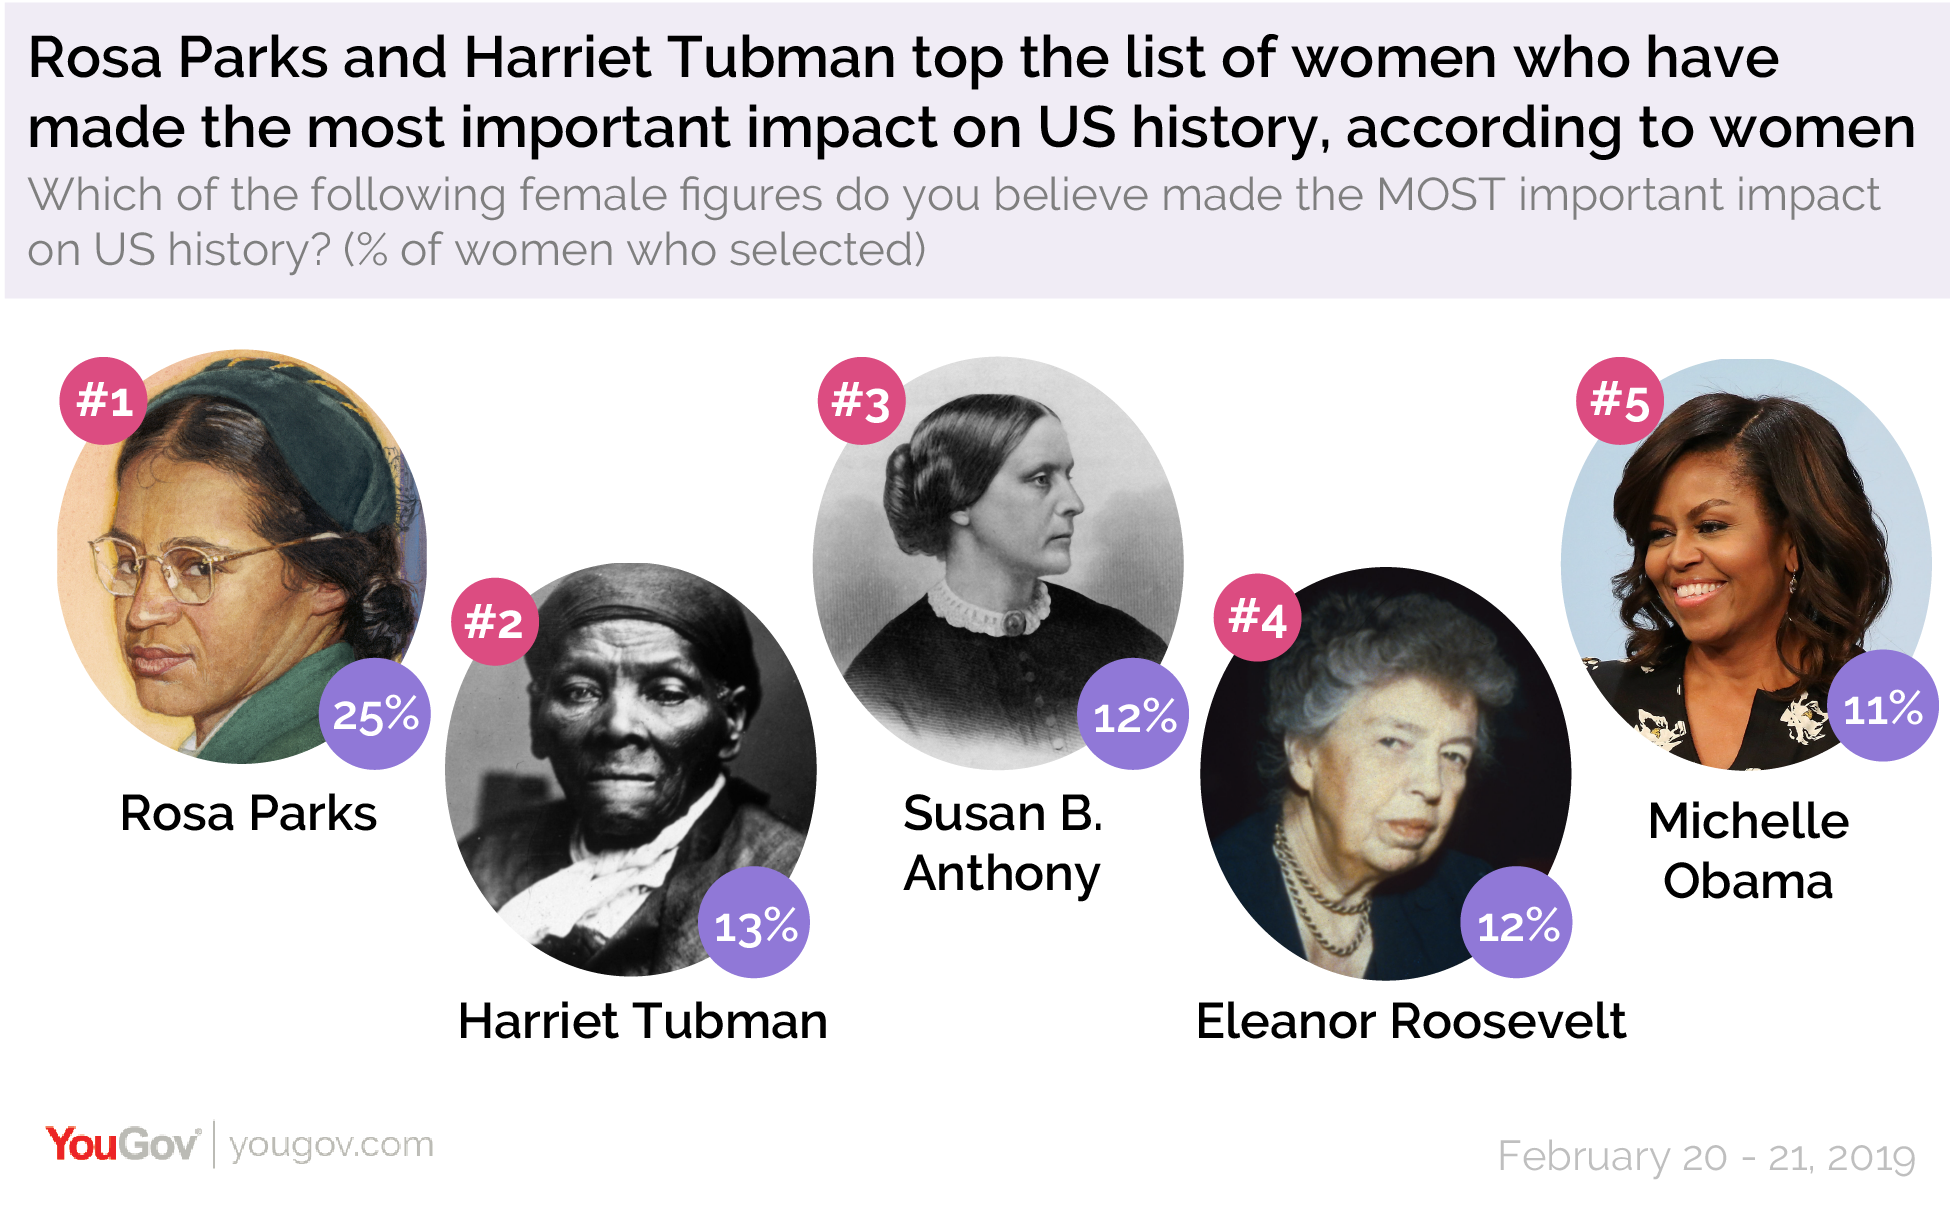 Rosa Parks and Harriet Tubman top the list of women who have made the most important impact on US history, according to women